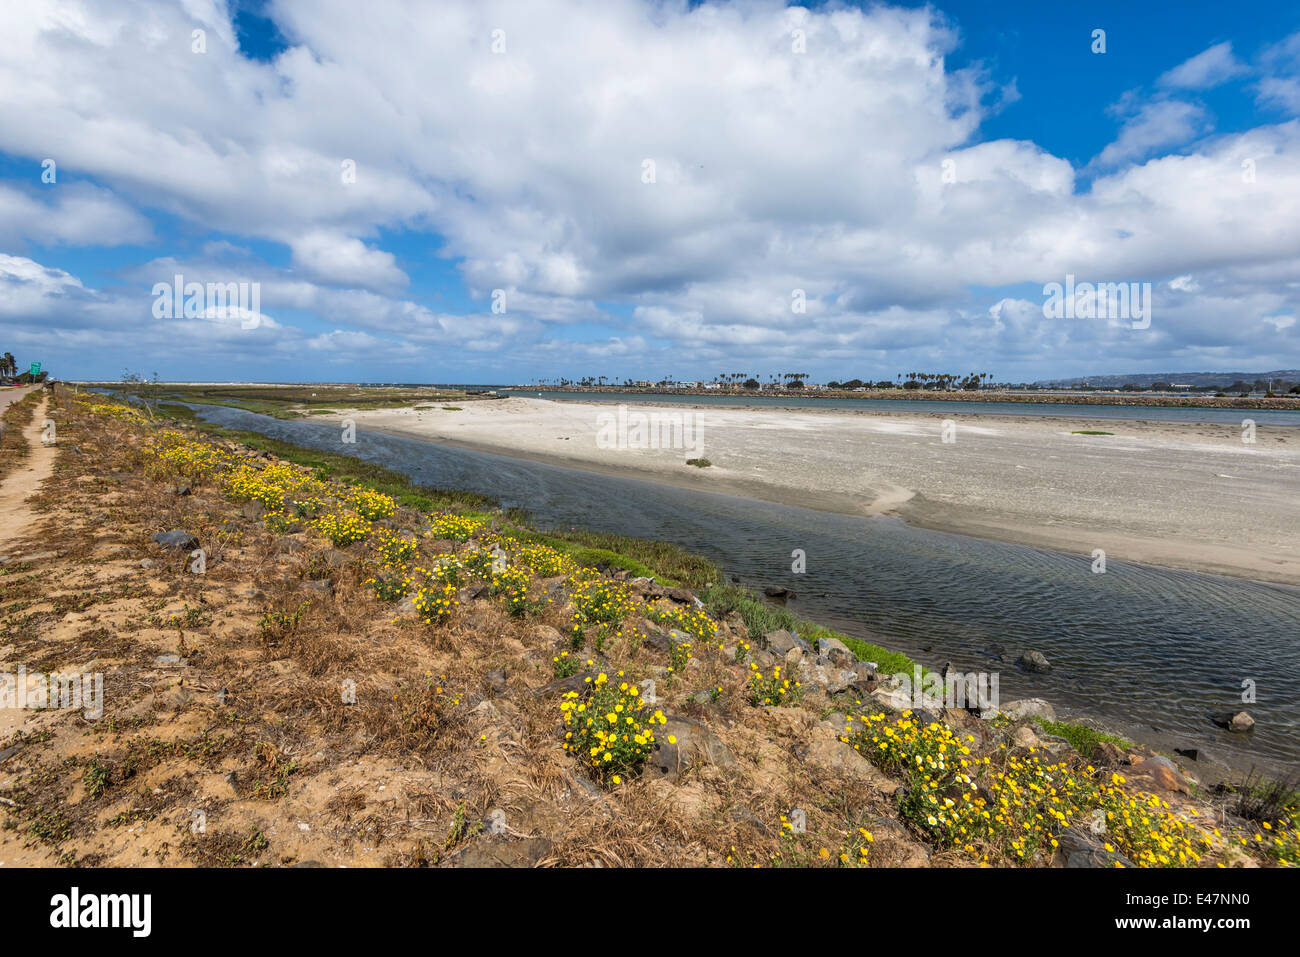 The San Diego River looking towards the ocean. San Diego, California, United States. - Stock Image